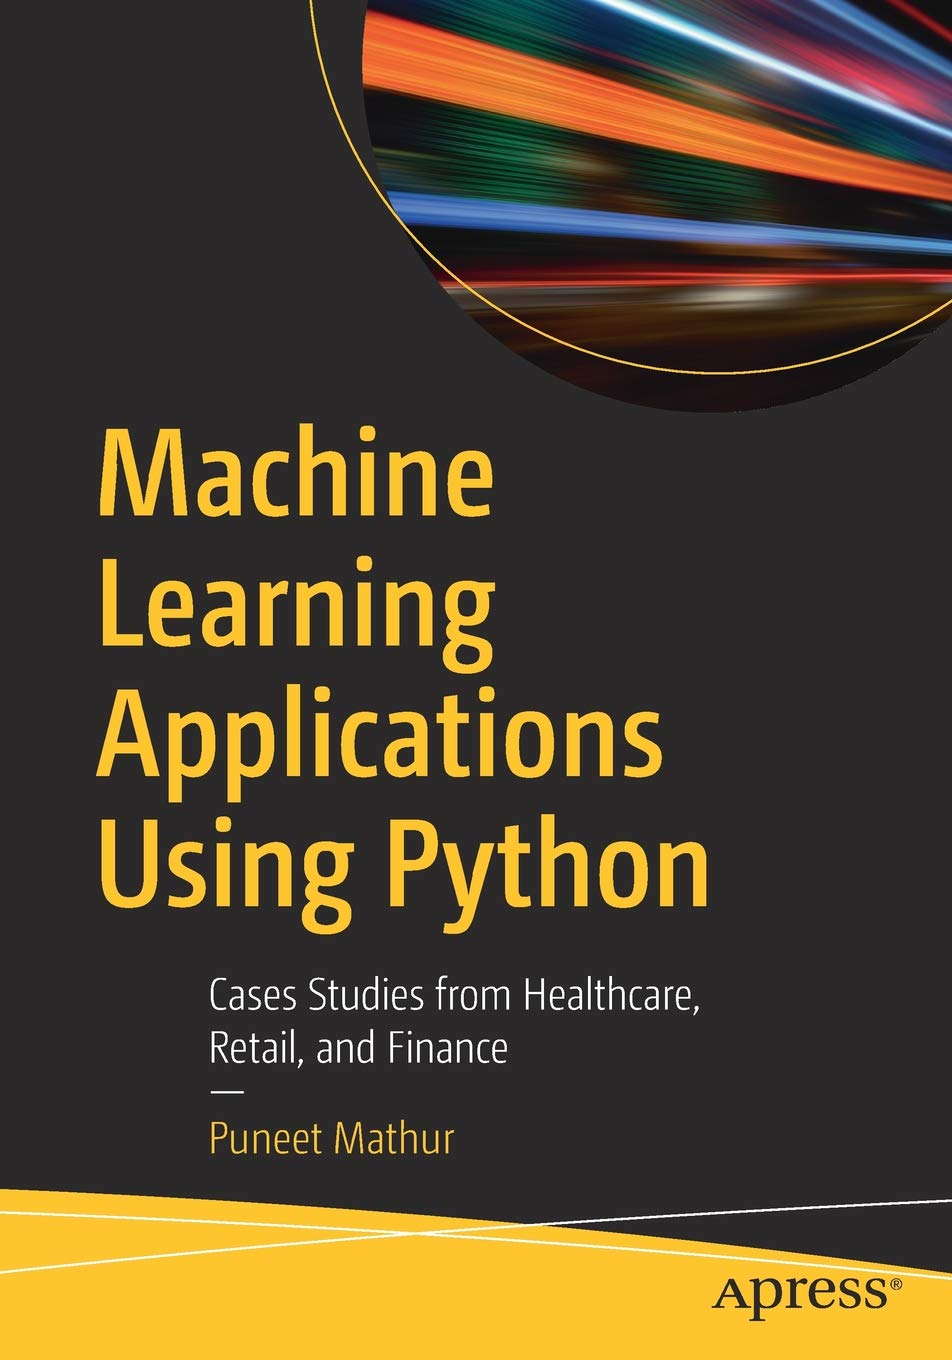 Machine Learning Applications Using Python: Cases Studies